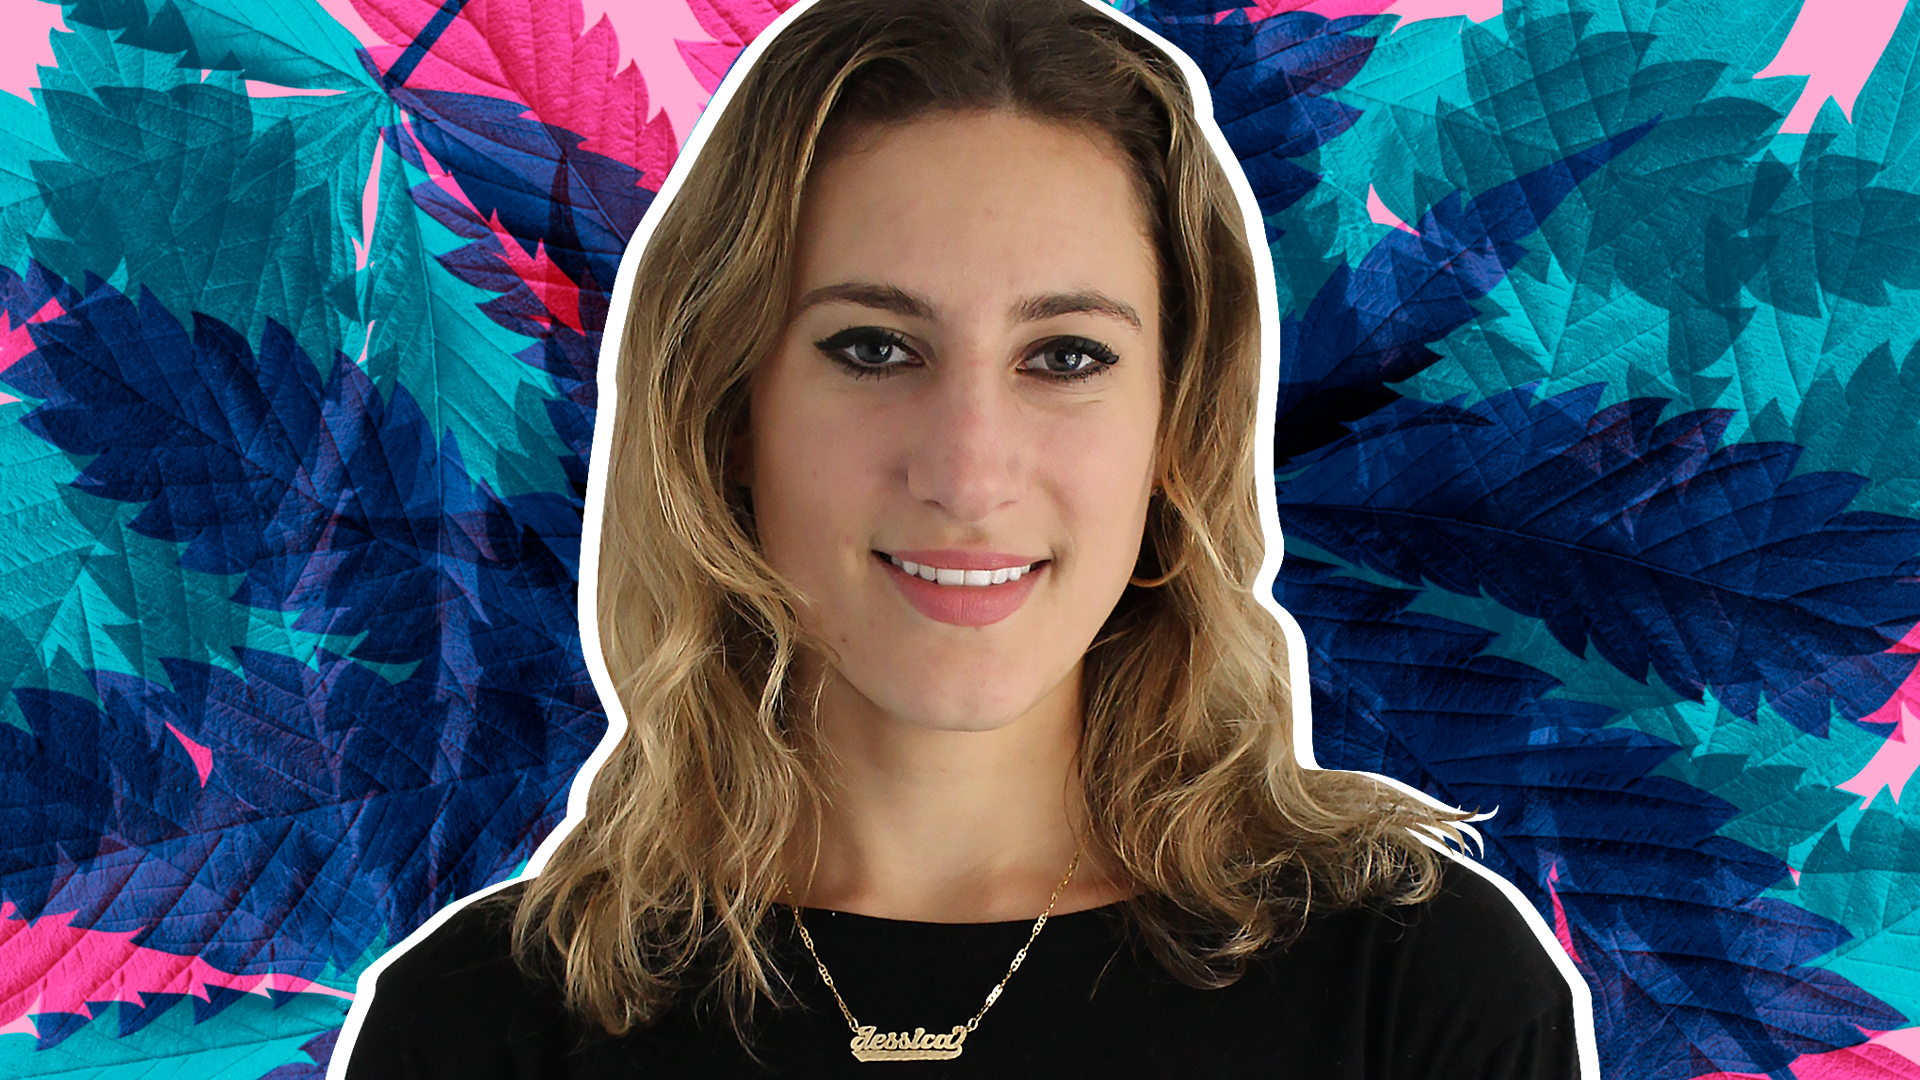 Meet the Woman Who's Changing the Face of the Cannabis Industry